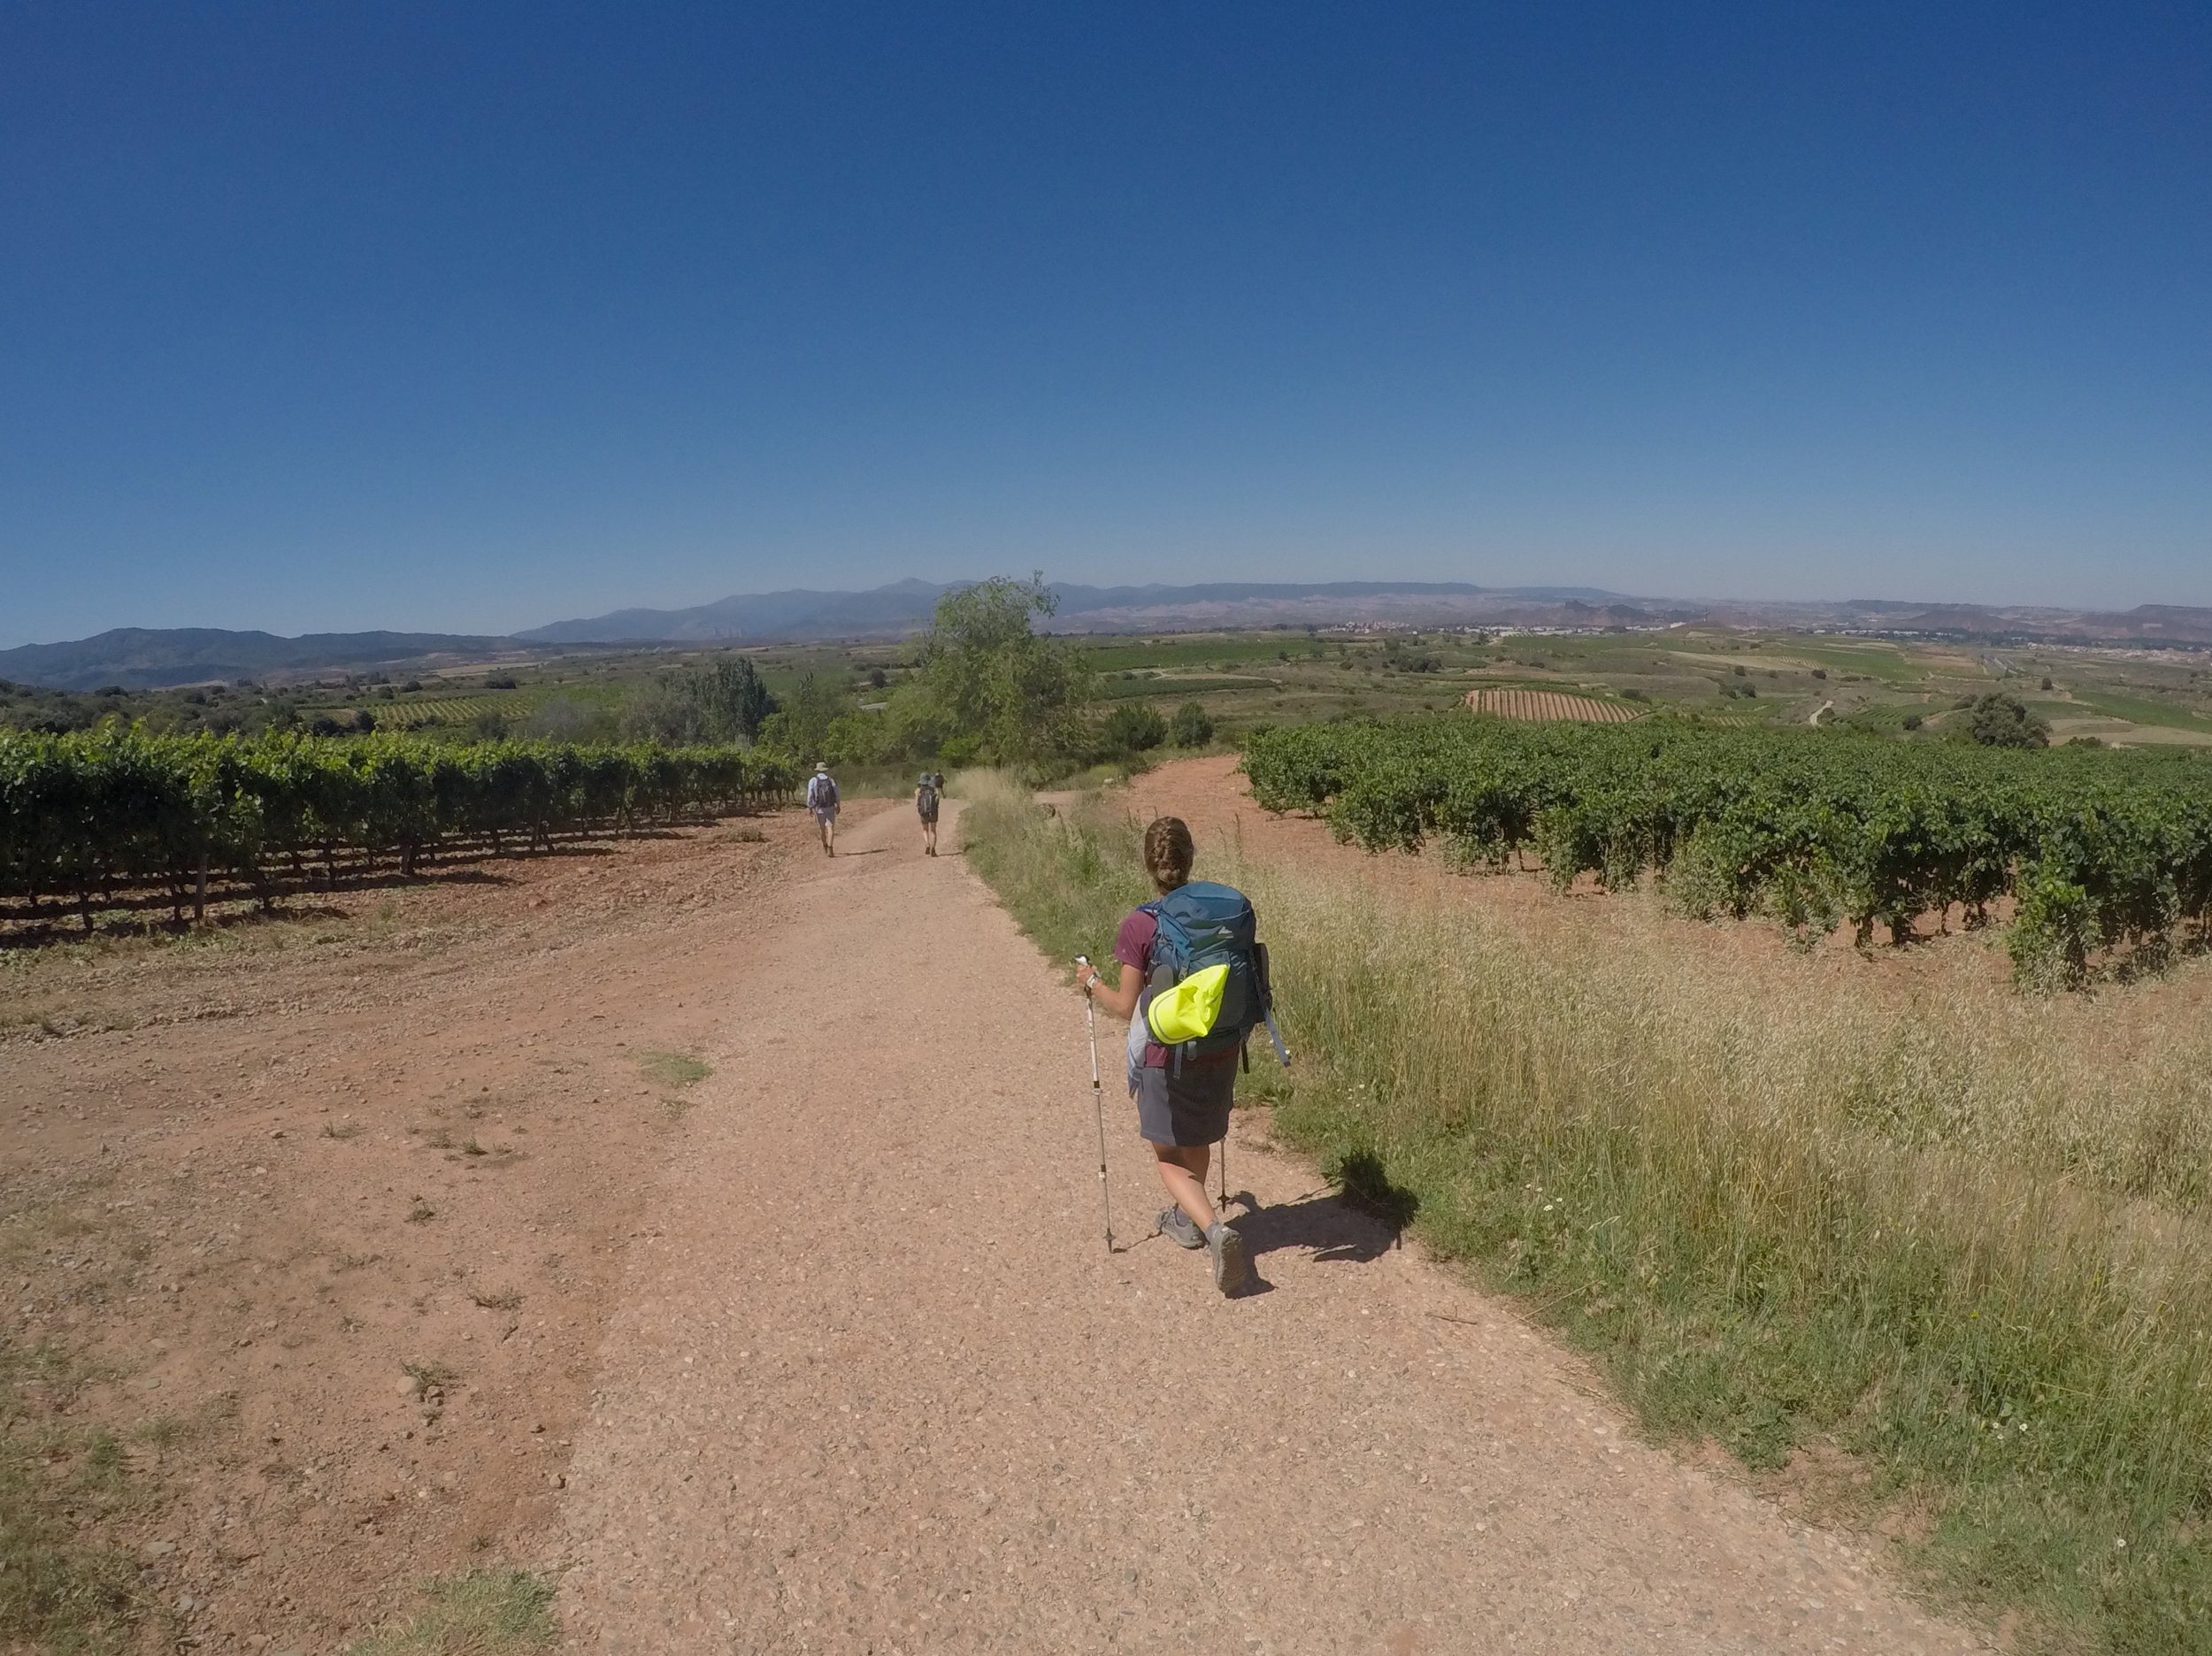 Walking through vineyards with Nájare in the distance